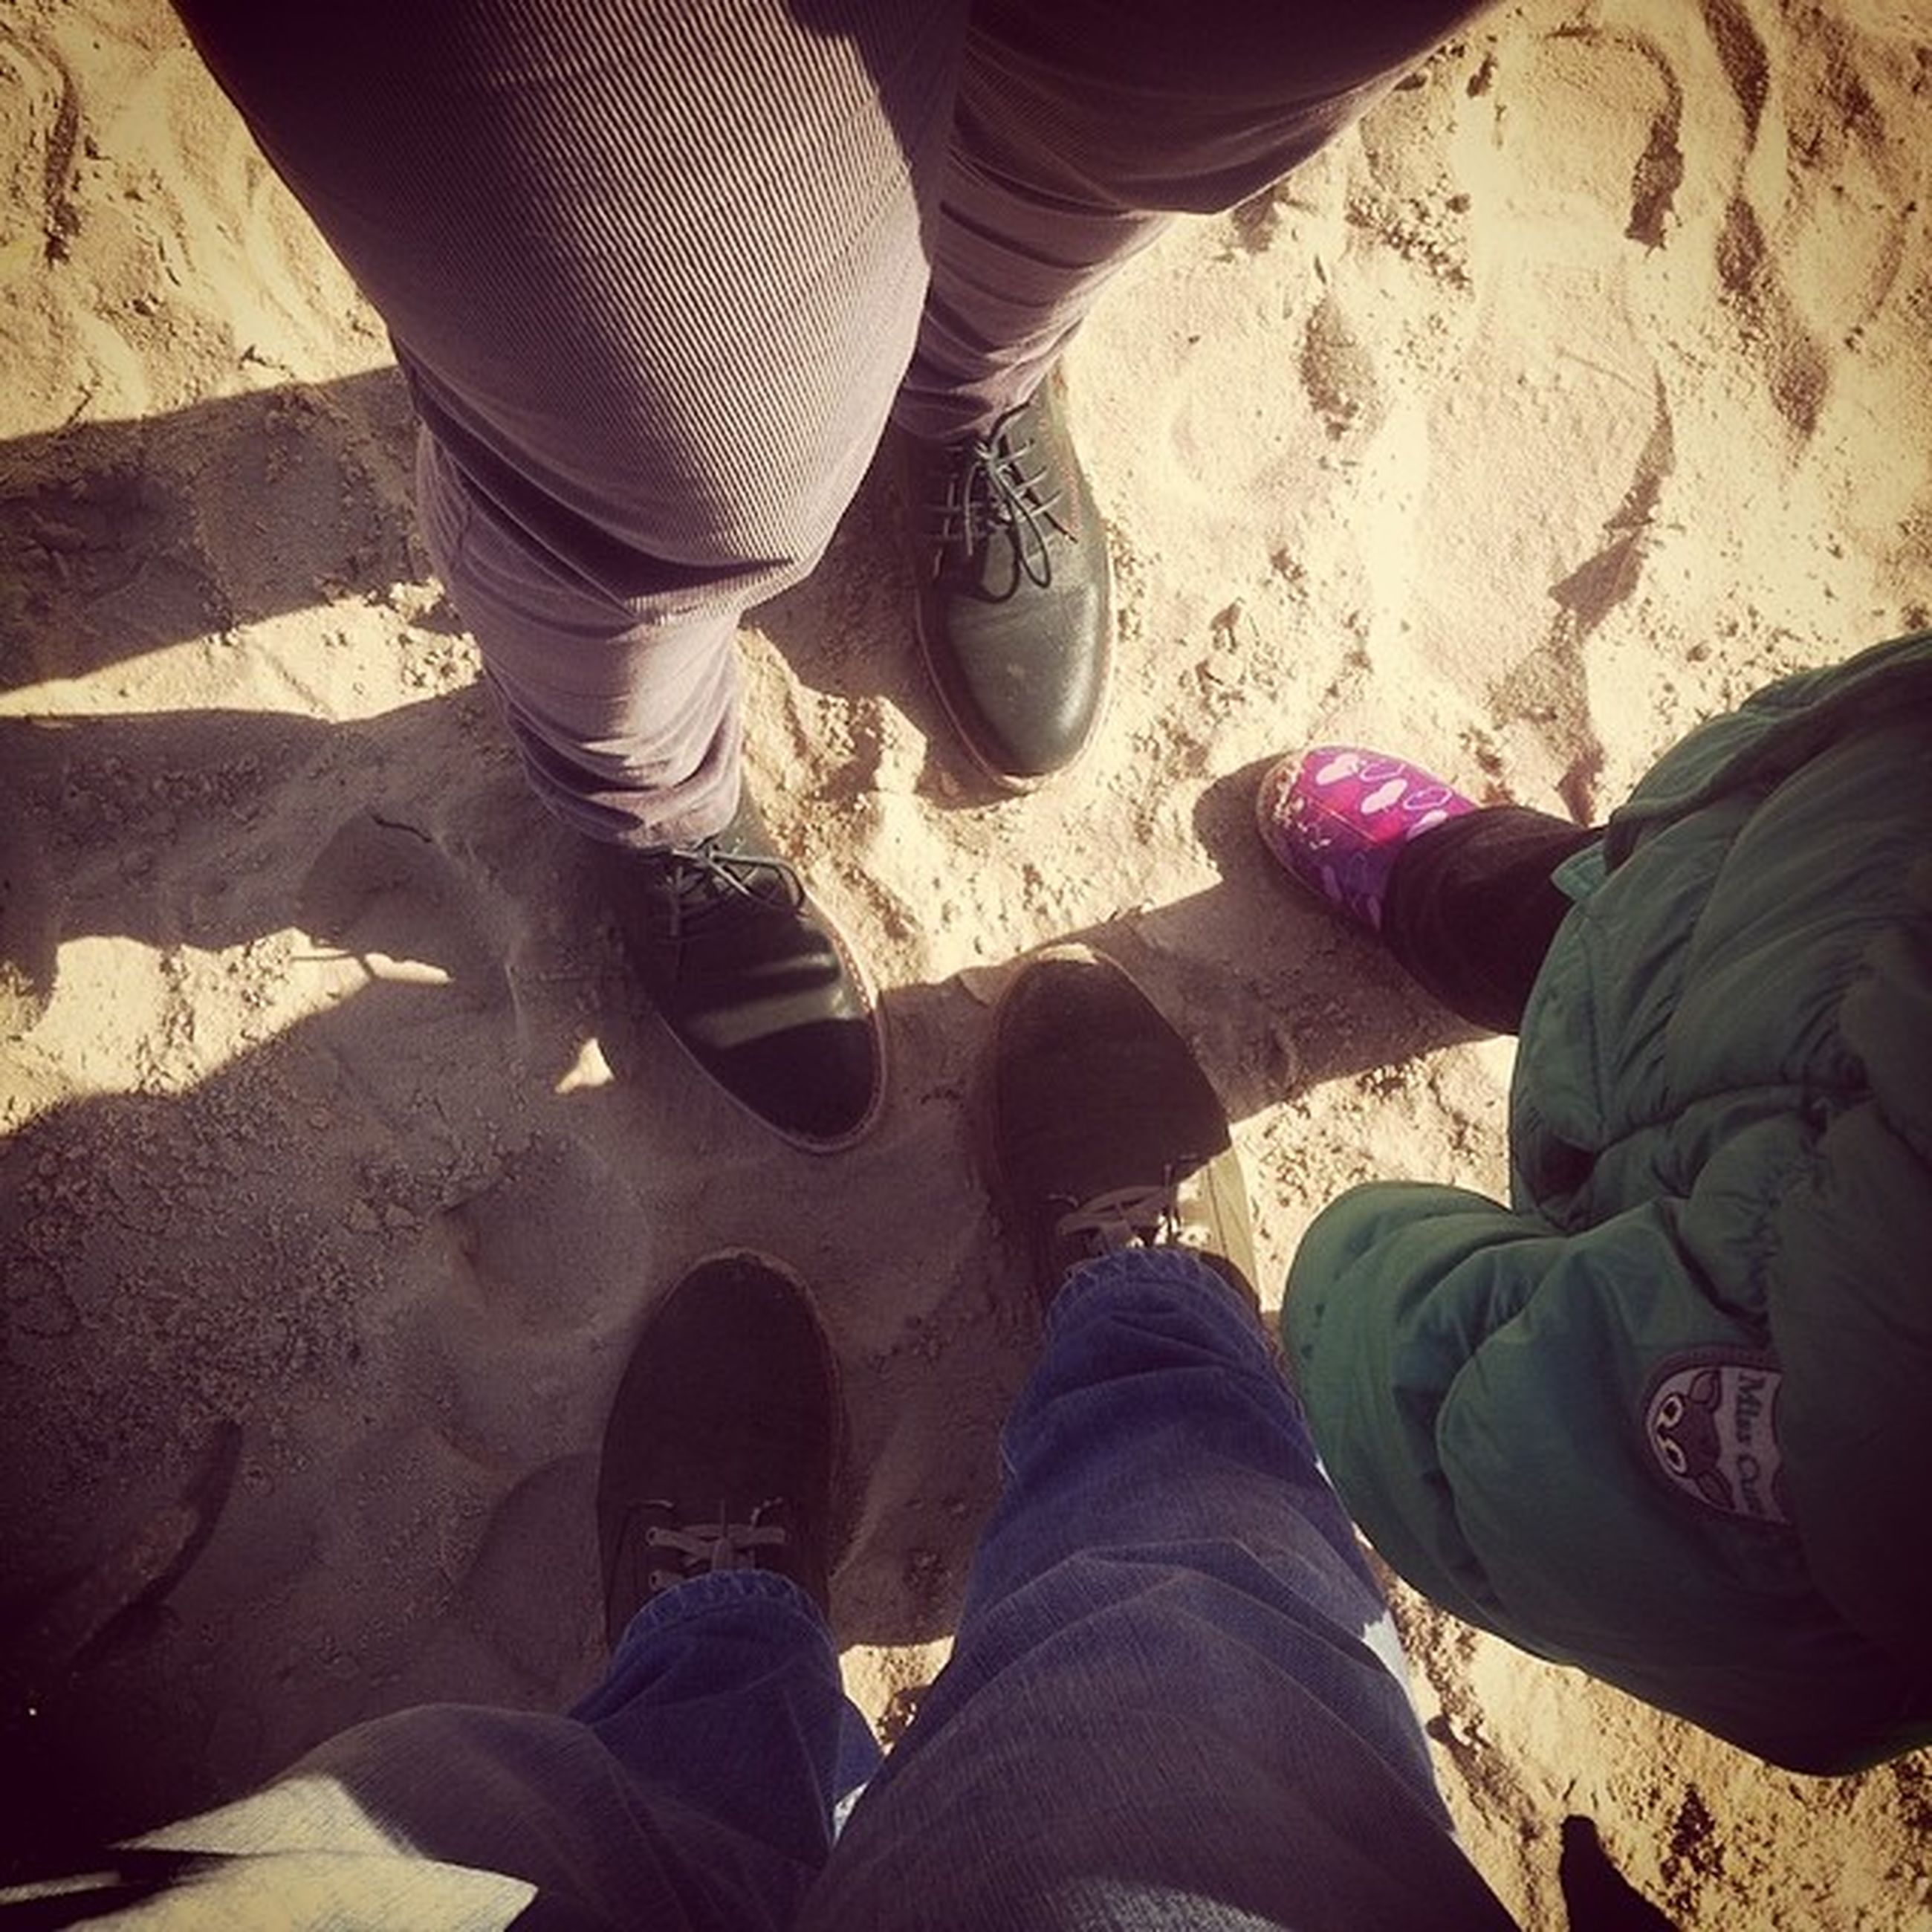 low section, person, shoe, lifestyles, men, standing, leisure activity, togetherness, jeans, human foot, casual clothing, personal perspective, high angle view, bonding, footwear, friendship, sand